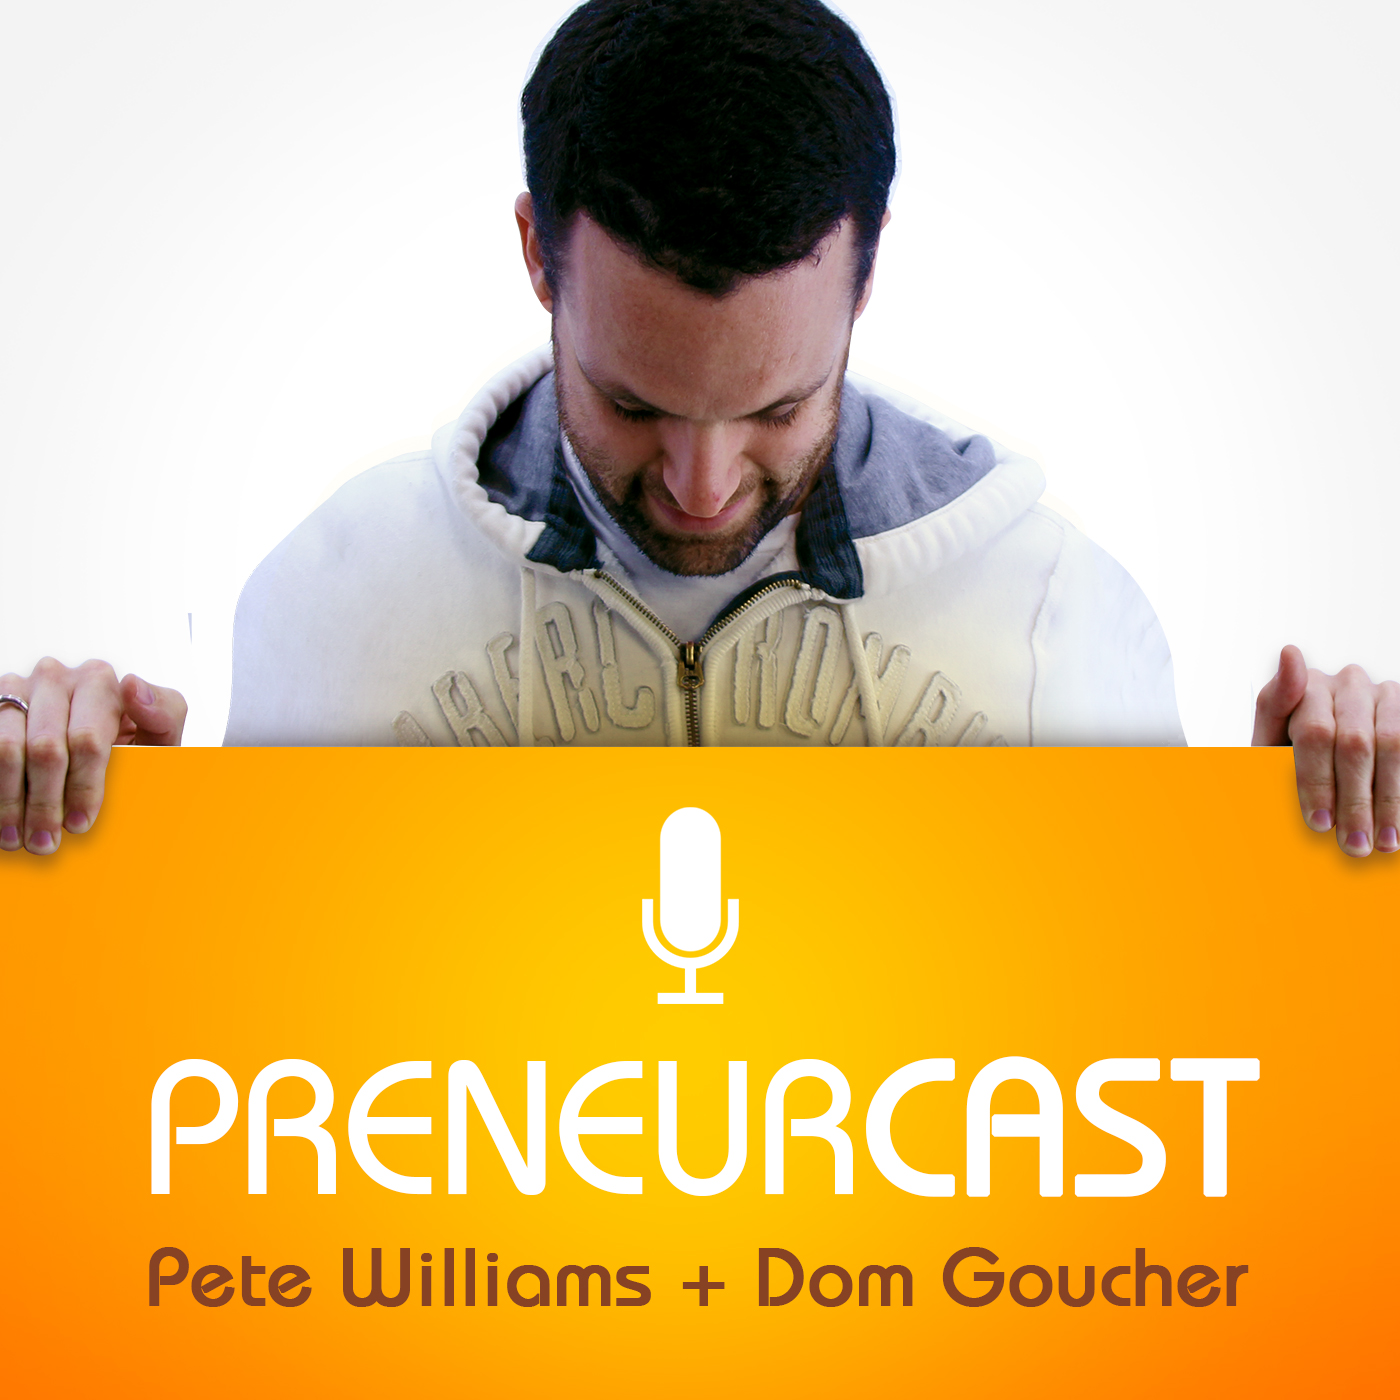 PreneurCast: Entrepreneurship, Business, Internet Marketing and Productivity